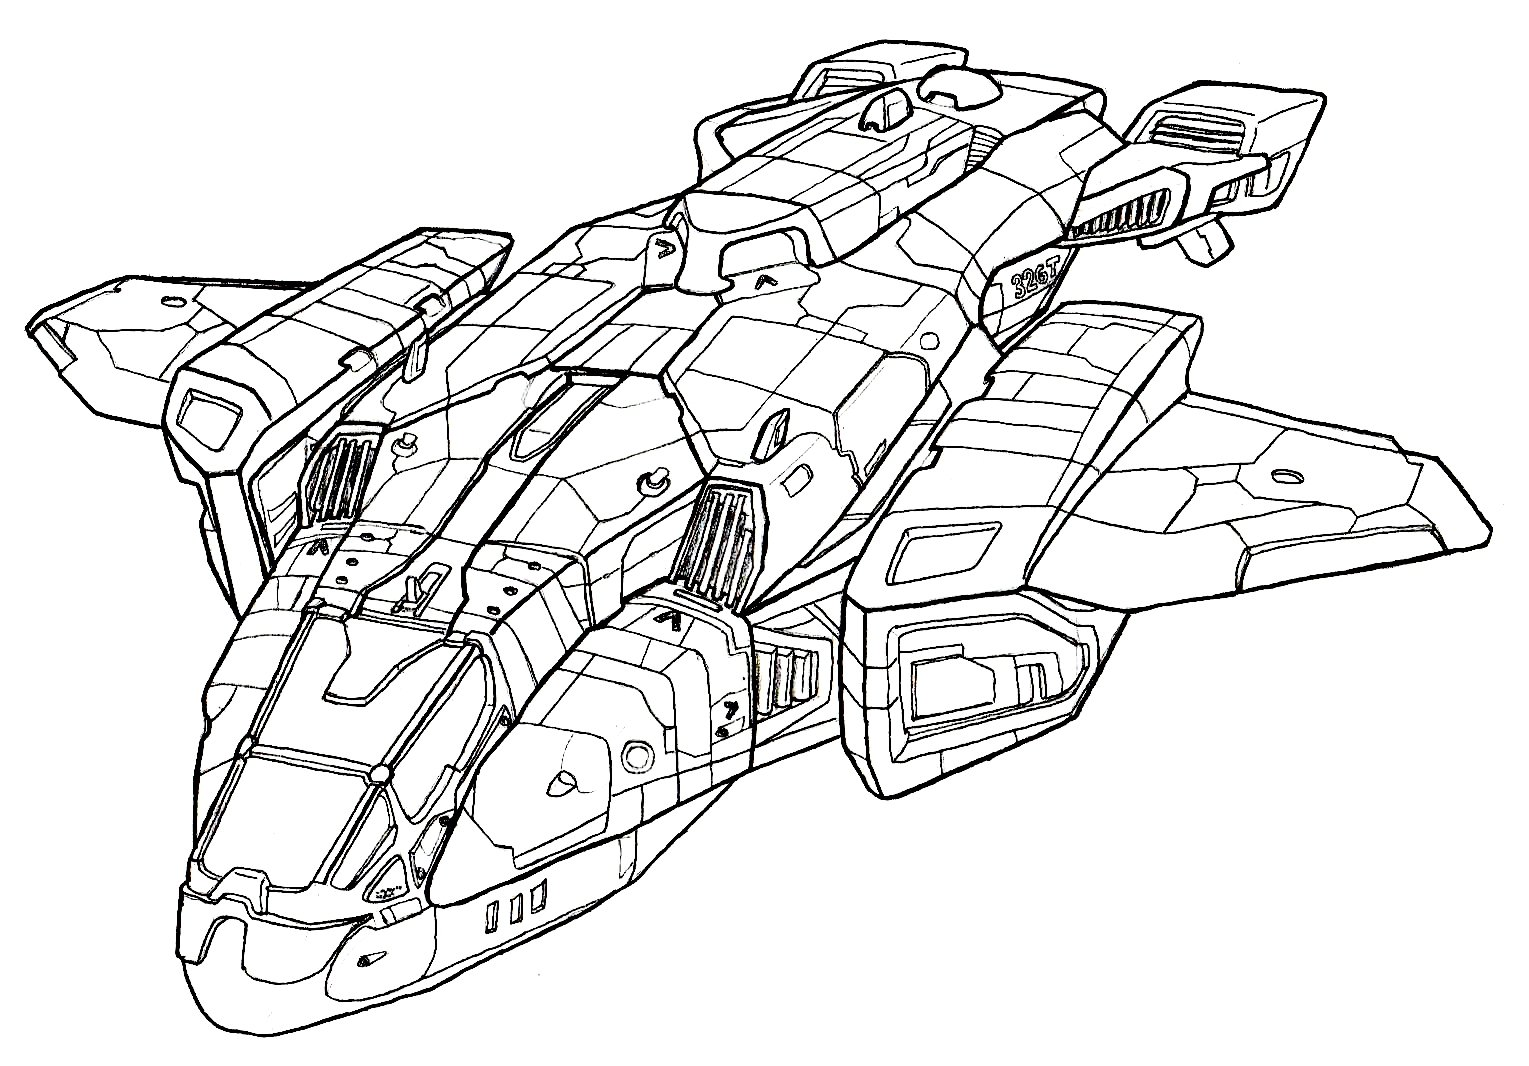 Halo 5 Coloring Pages Halo Vehicles Coloring Pages  Murderthestout